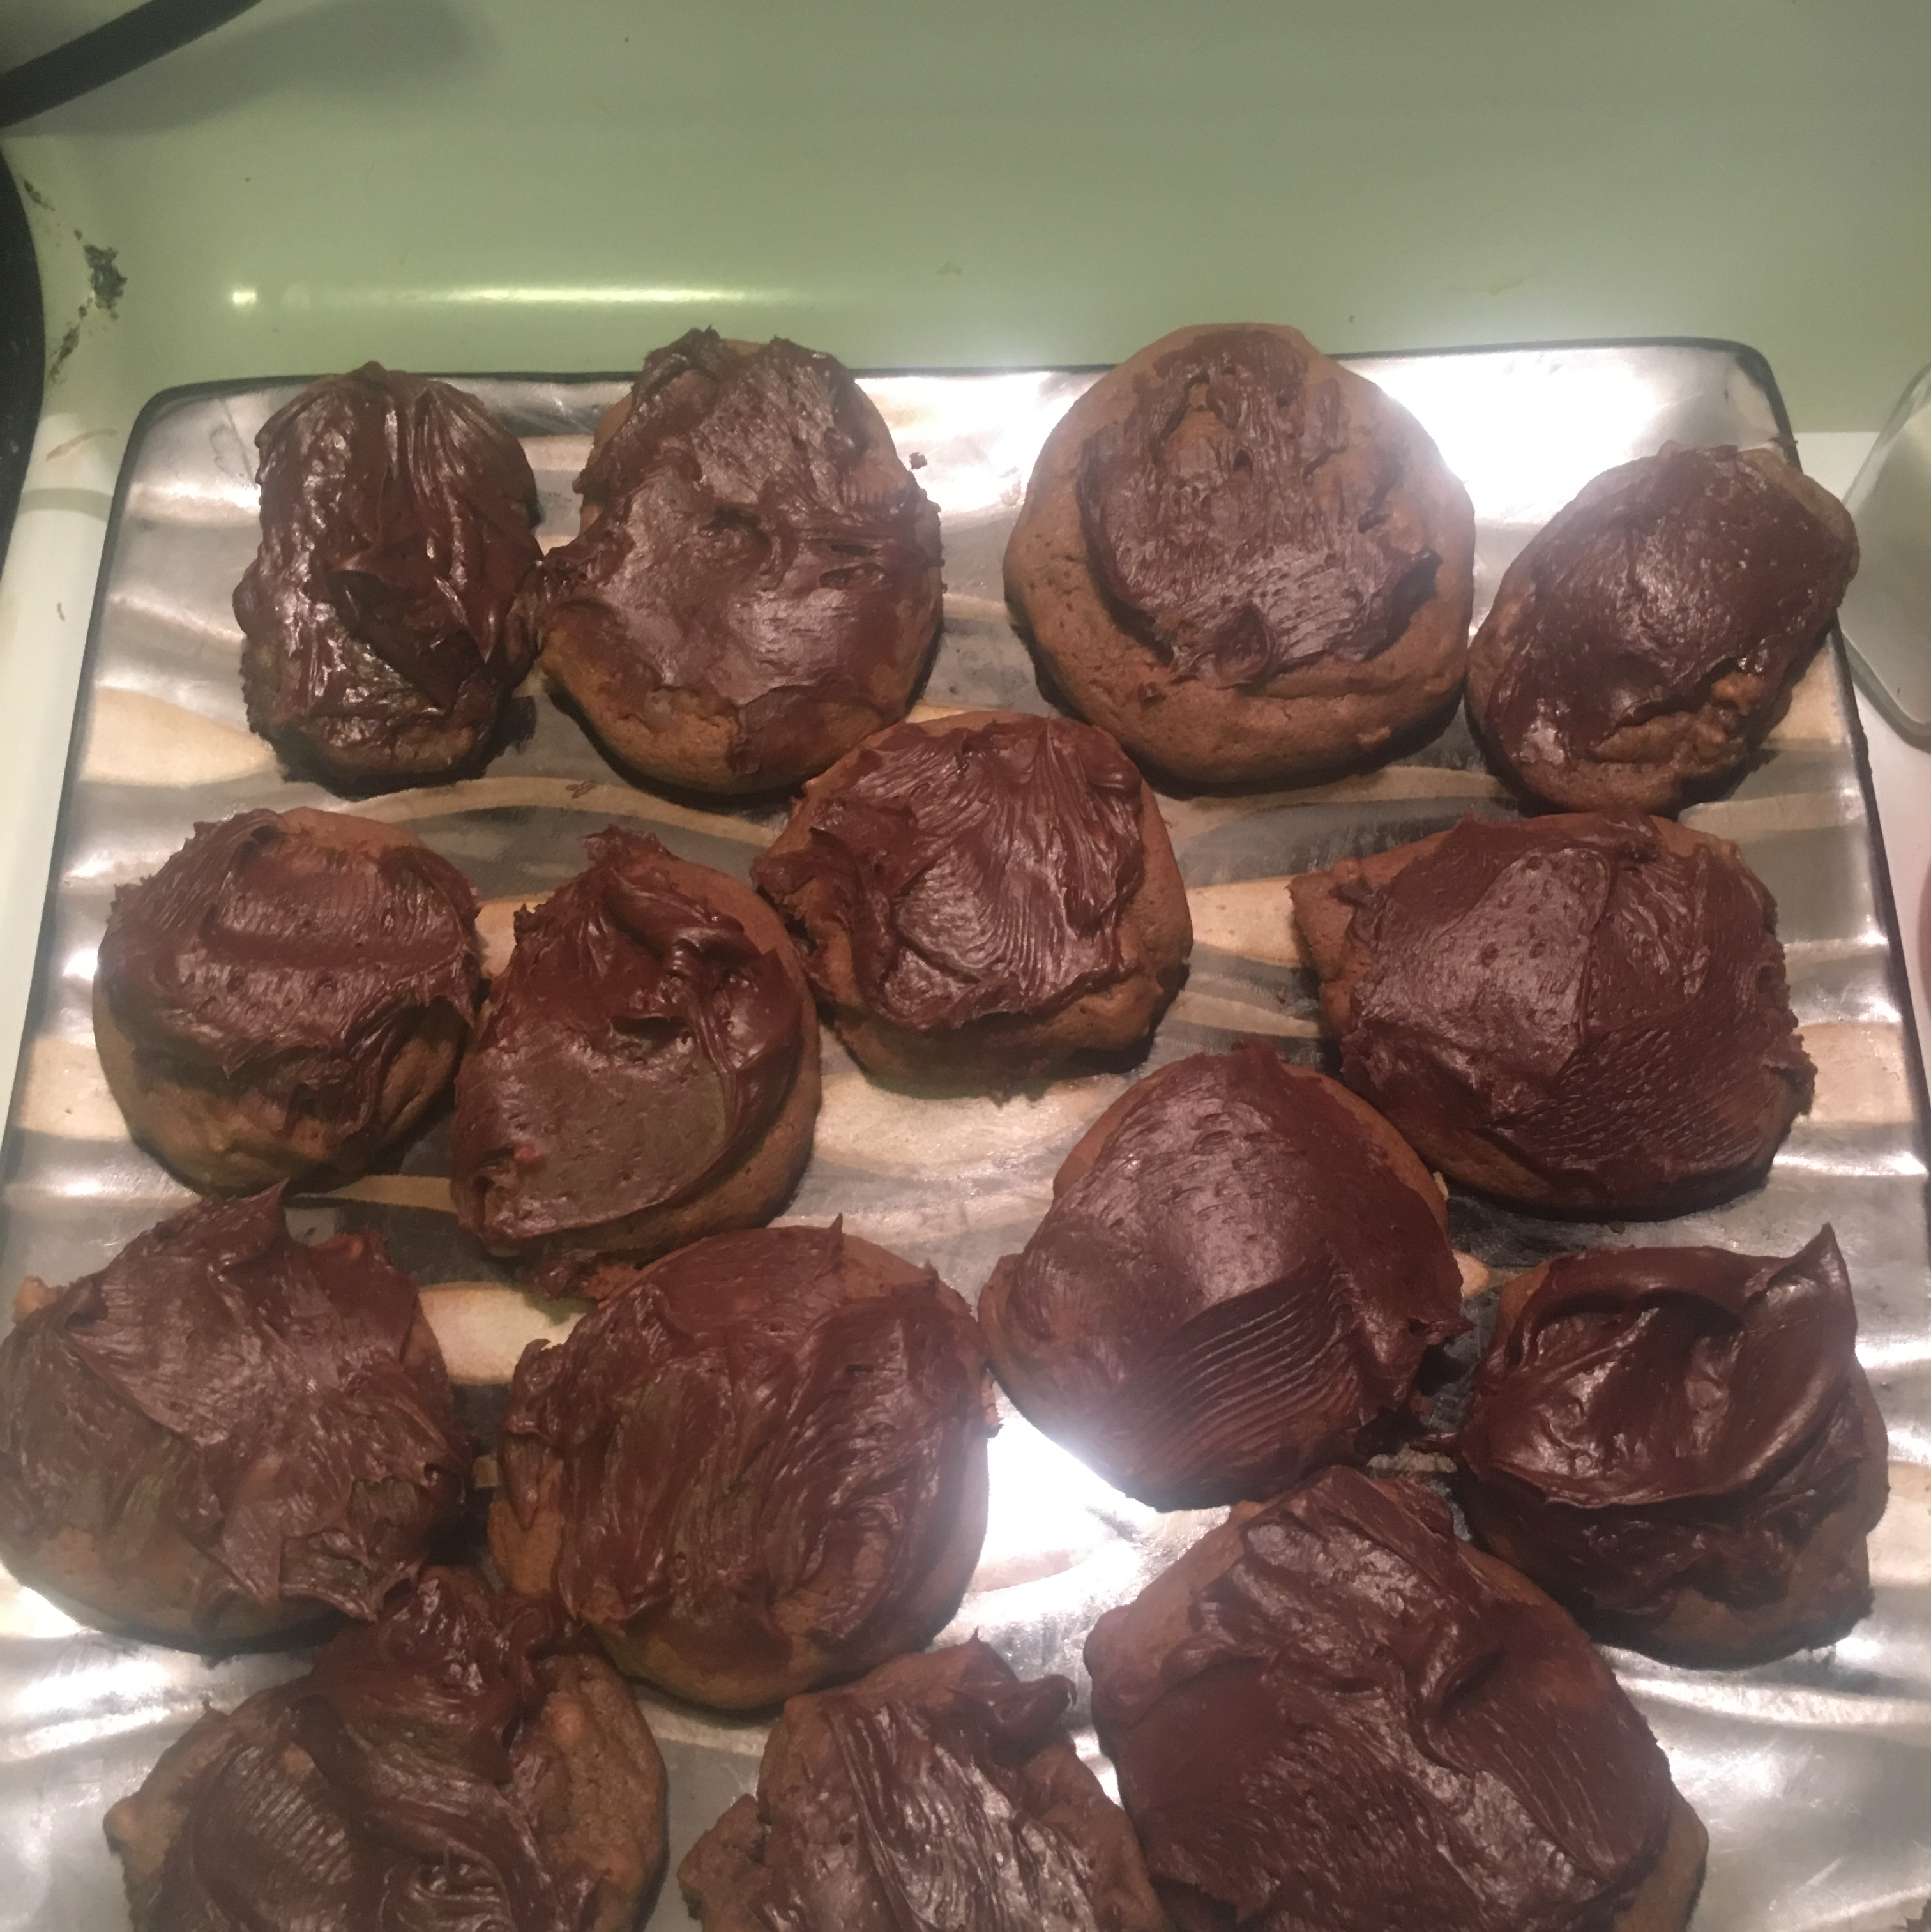 Frosted Chocolate Cookies Greg Pierce